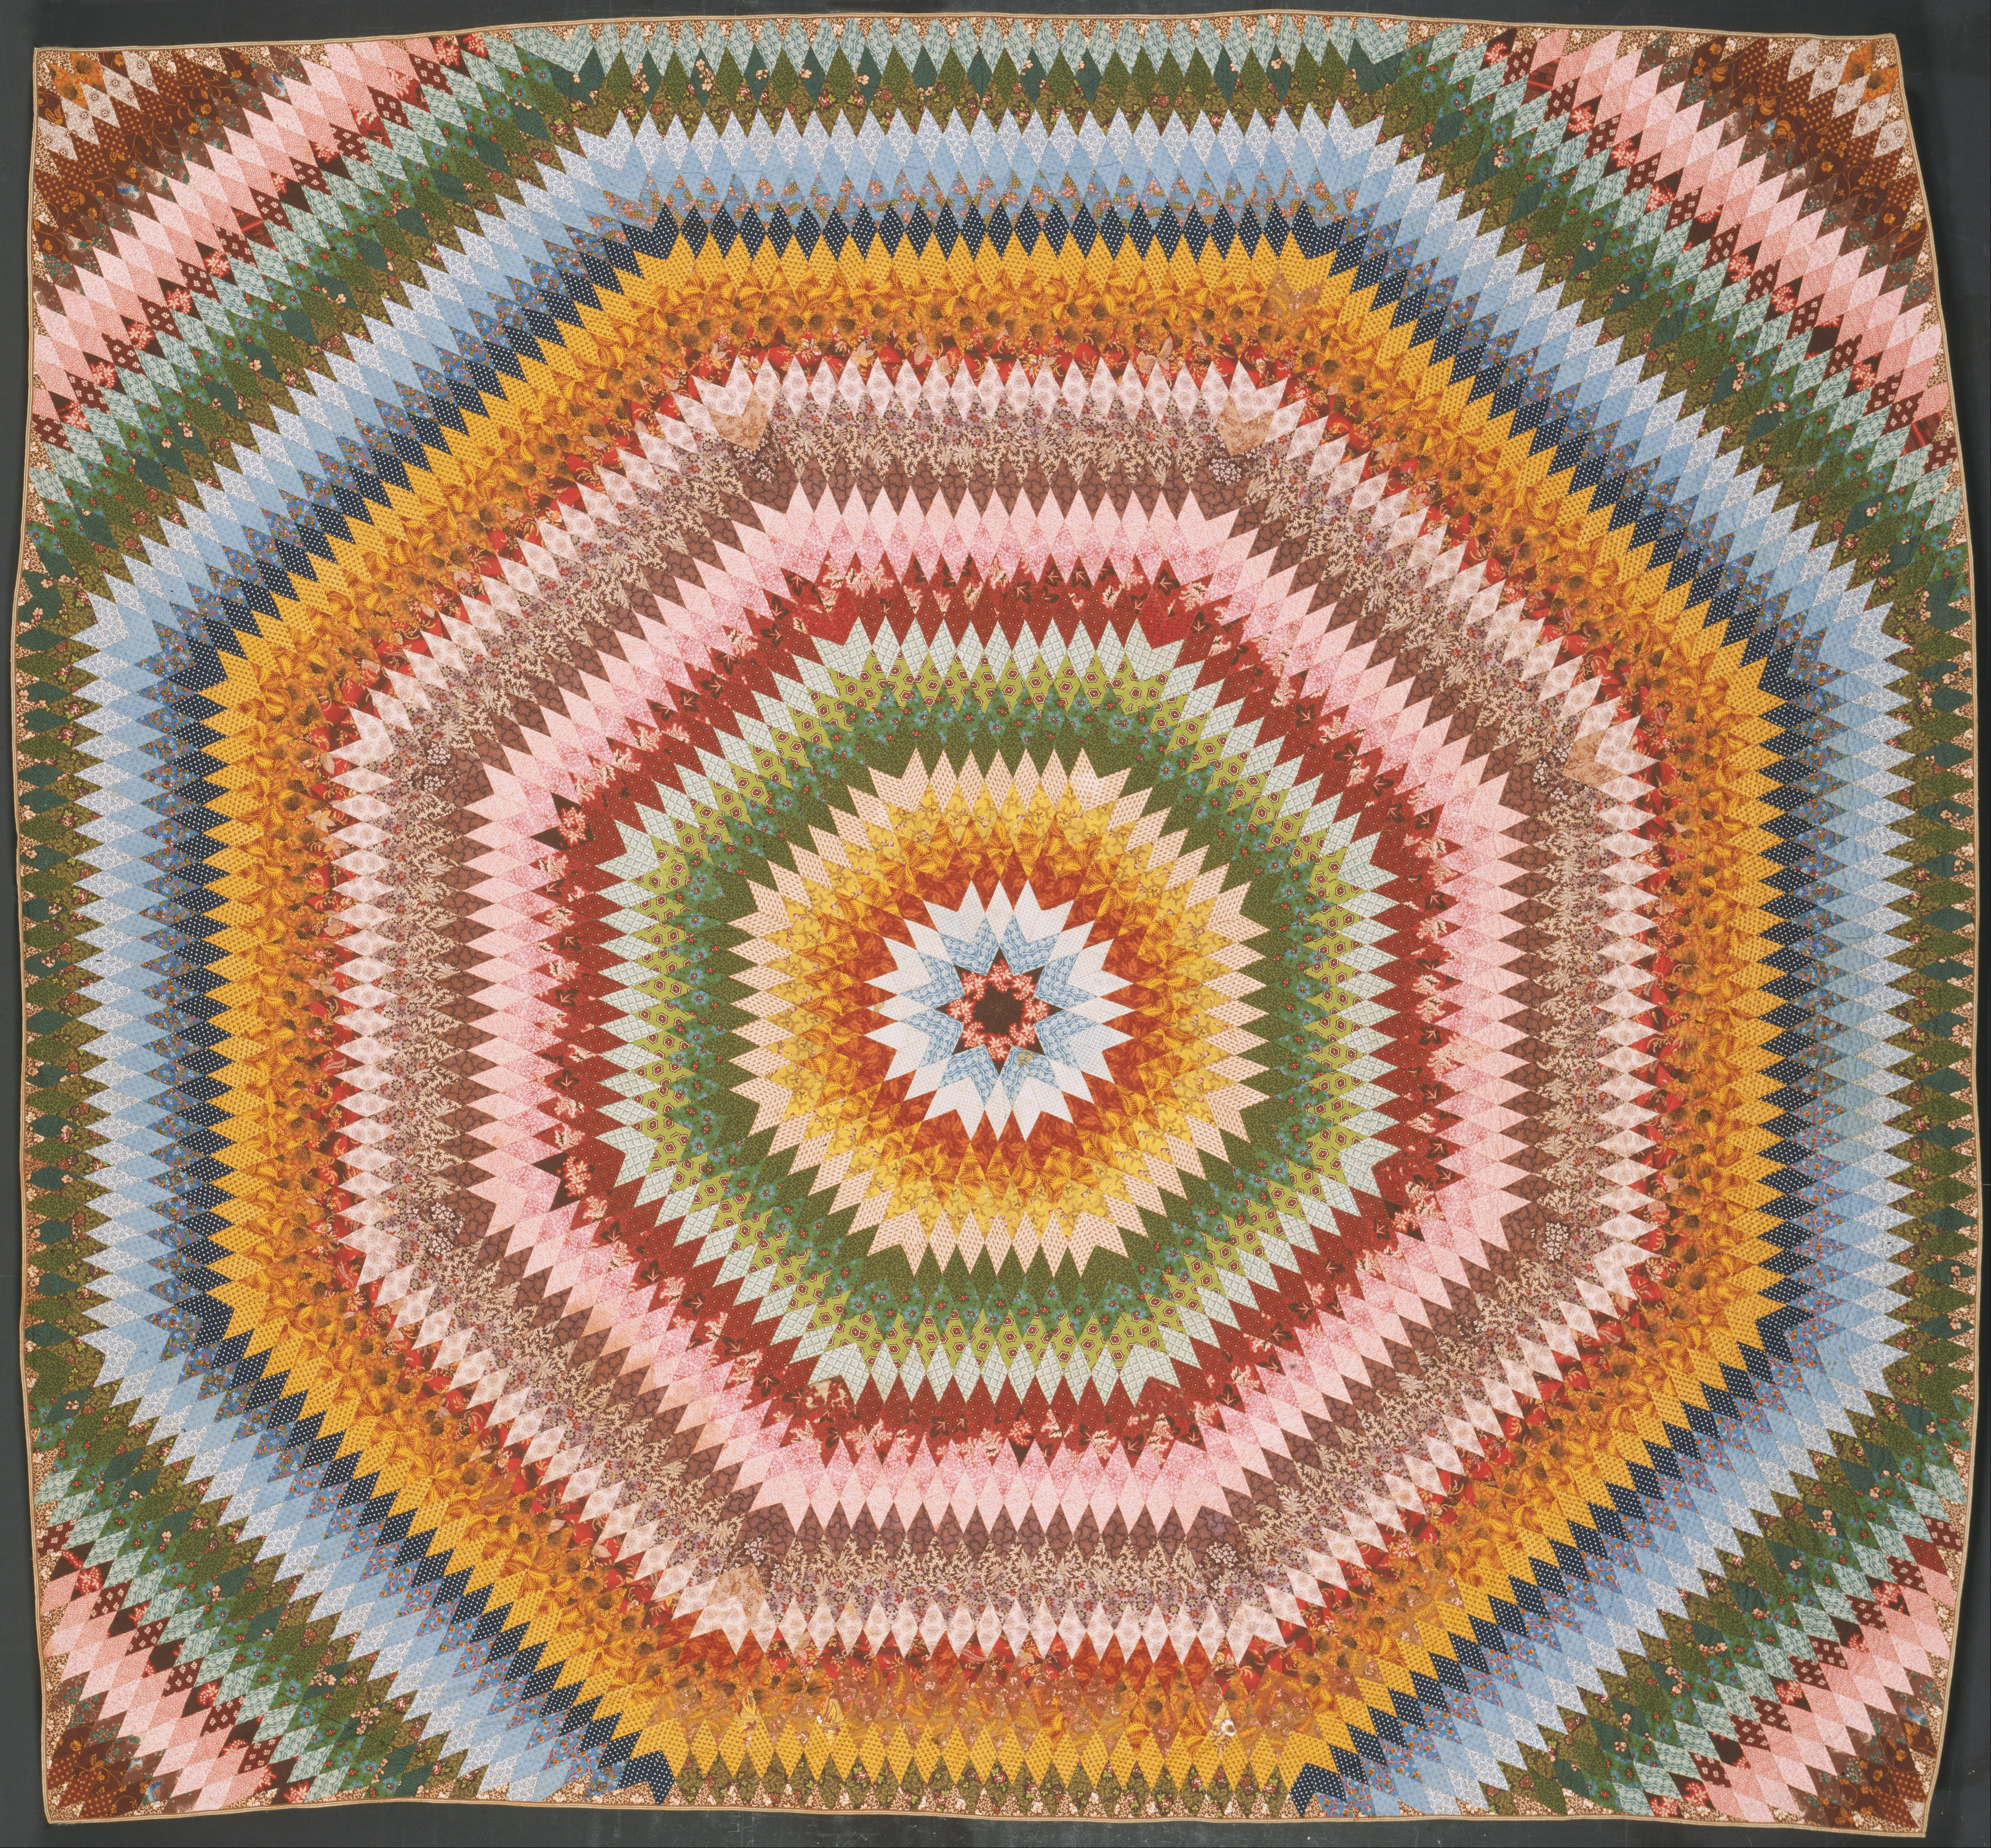 File:Made by Rebecca Scattergood Savery, American - Sunburst Quilt ... : sunburst quilt - Adamdwight.com